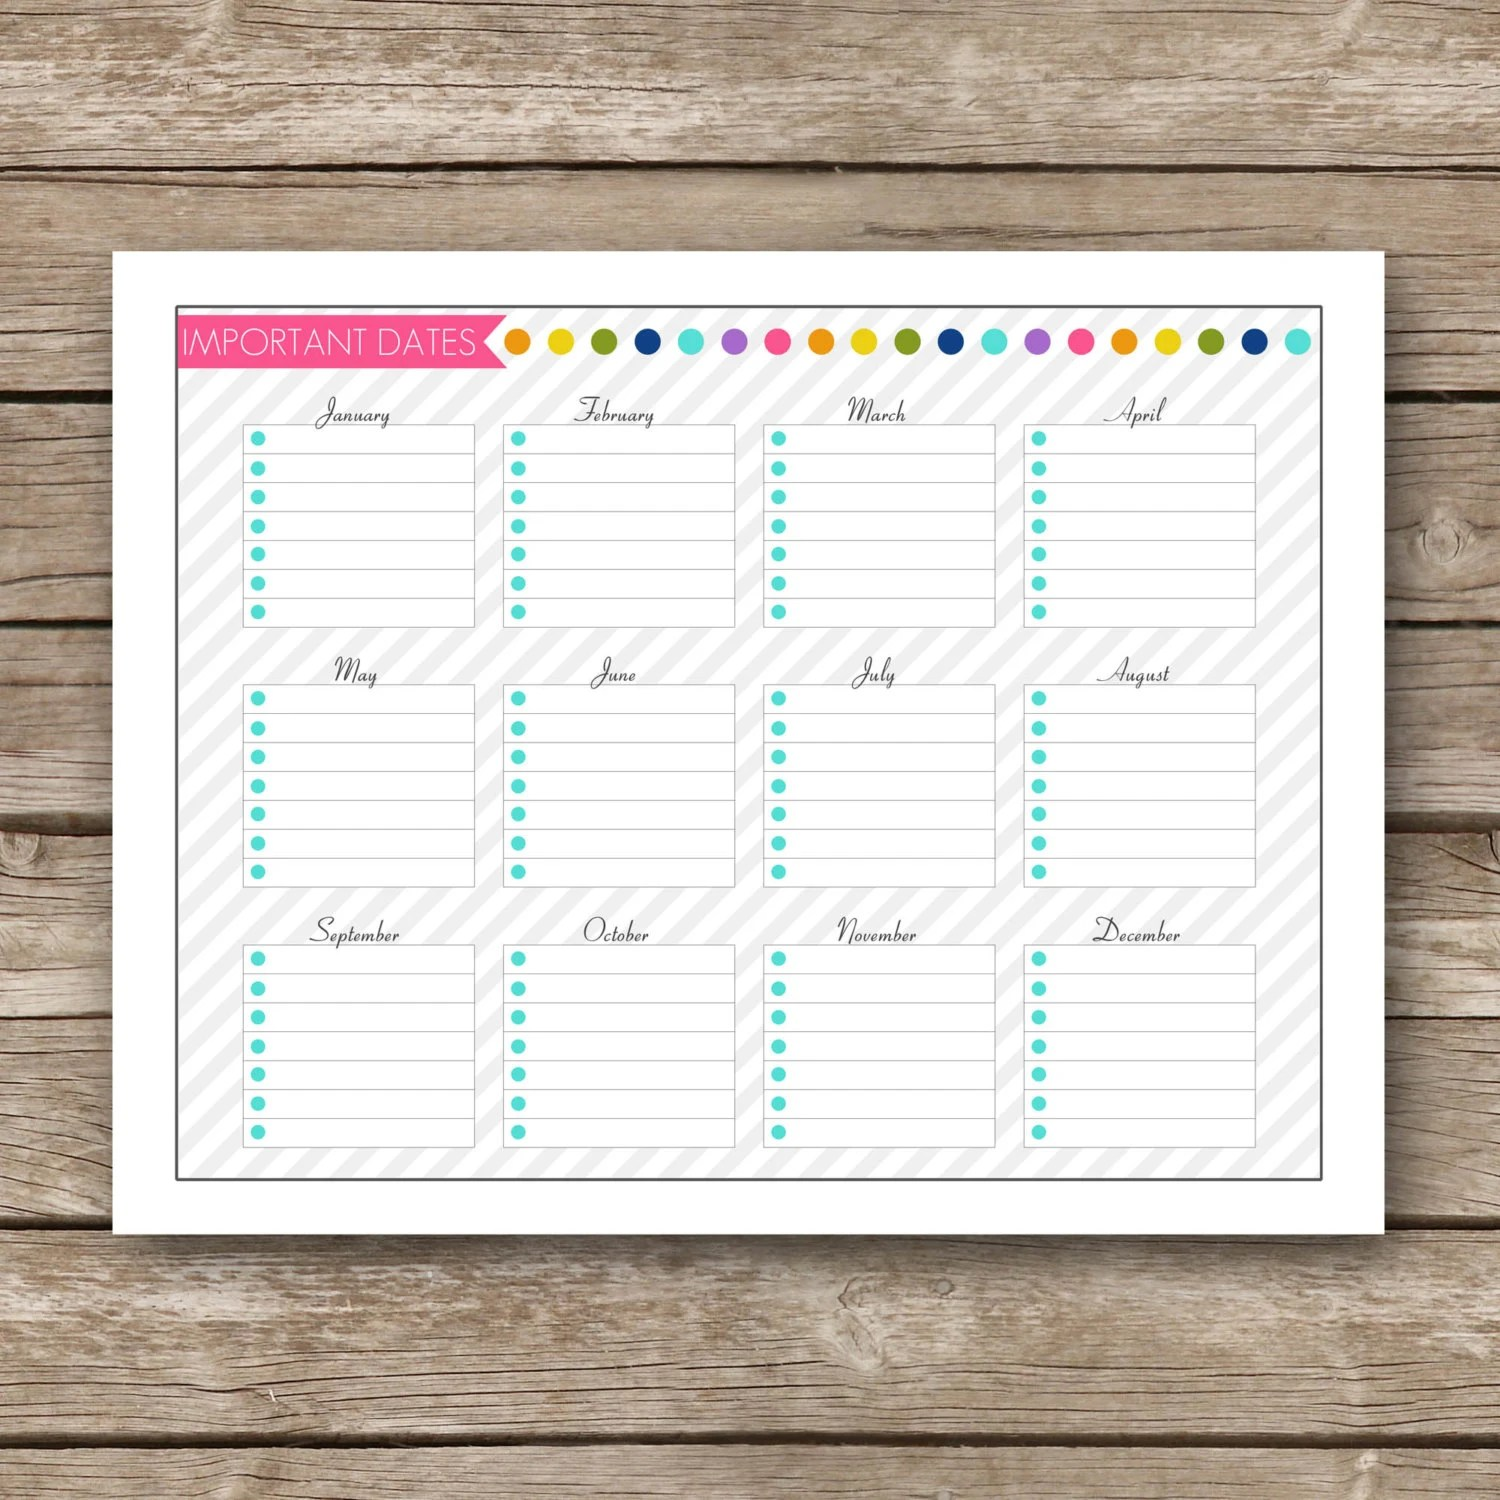 Printable Important Dates Worksheet Generic Any Year